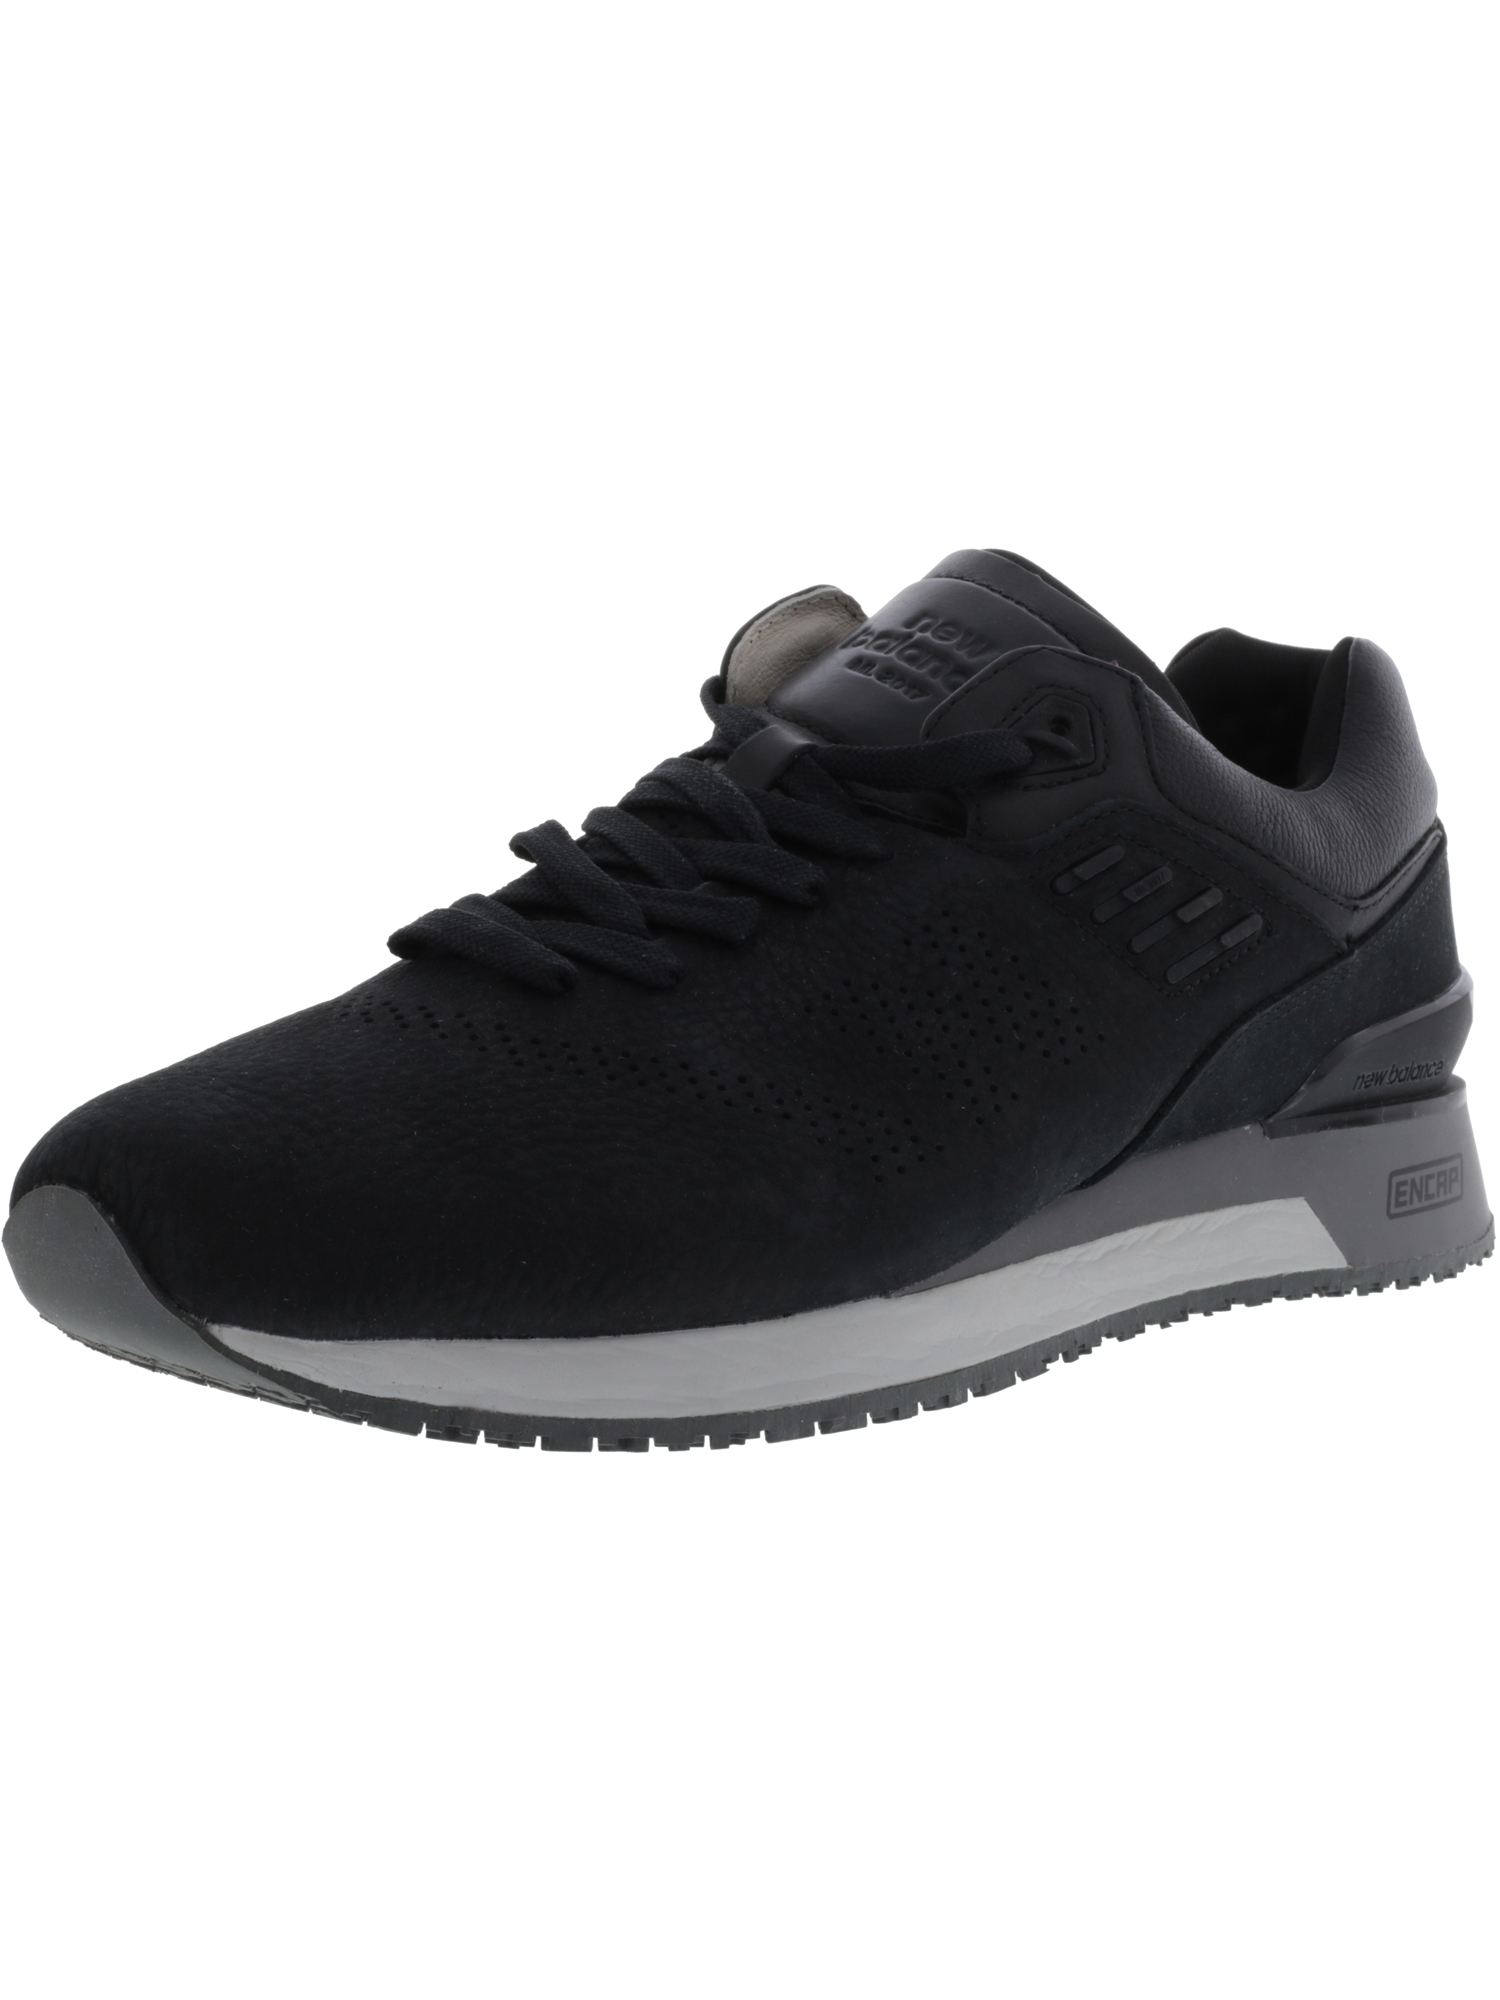 New Balance Men's Ankle-High Leather Fashion Sneaker